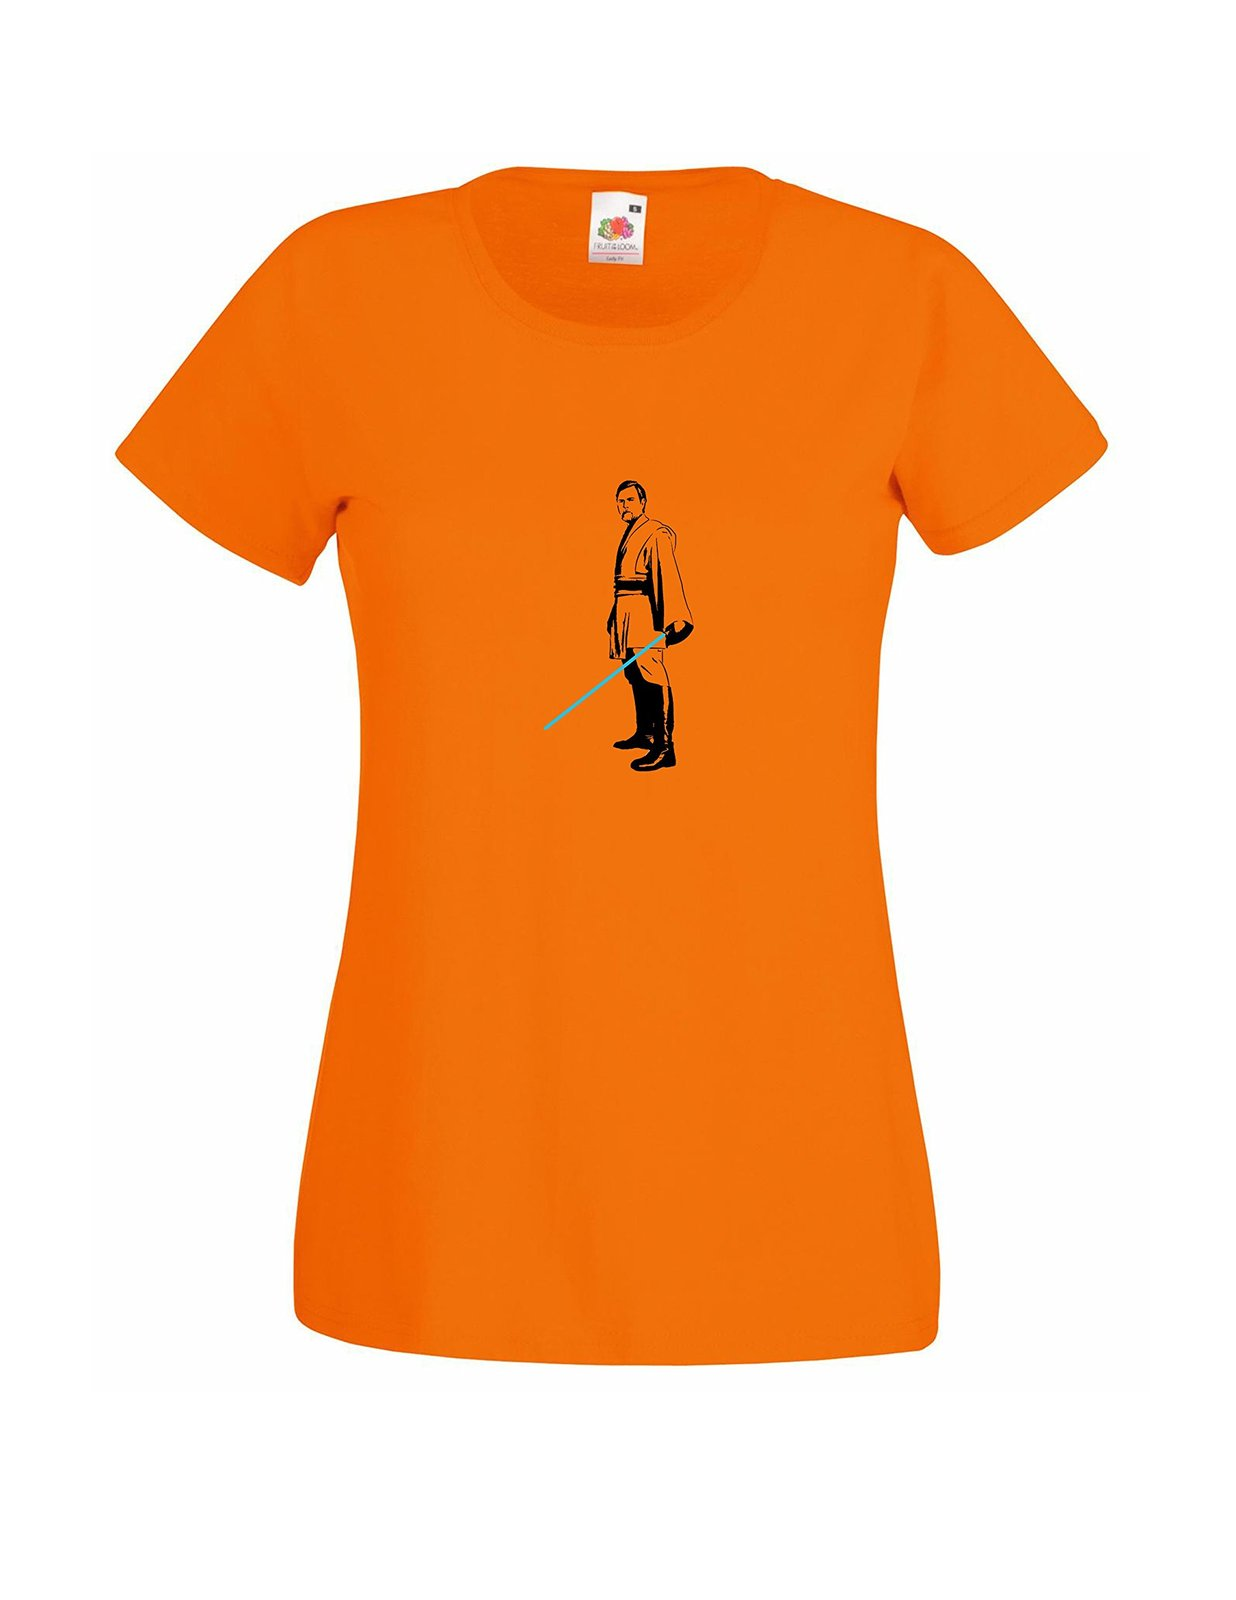 Womens Viking Face T-Shirt; Warrior with Axe and Shield shirts; Son of Odin Tshi - $24.74